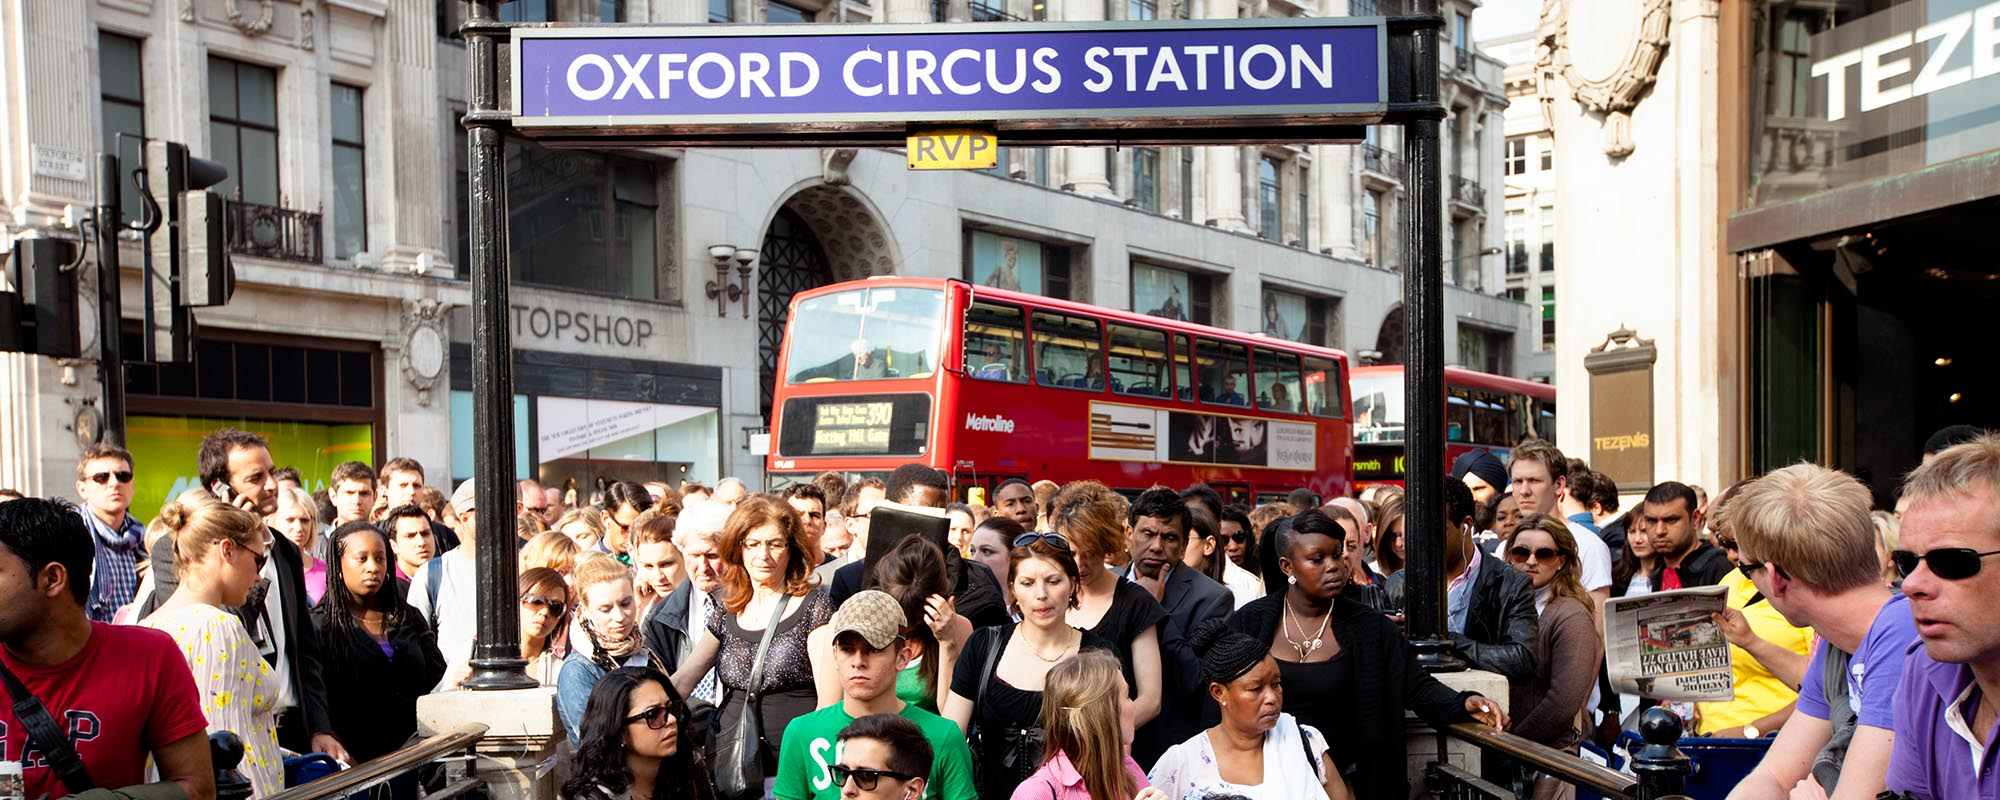 Oxford Circus Photo: Getty